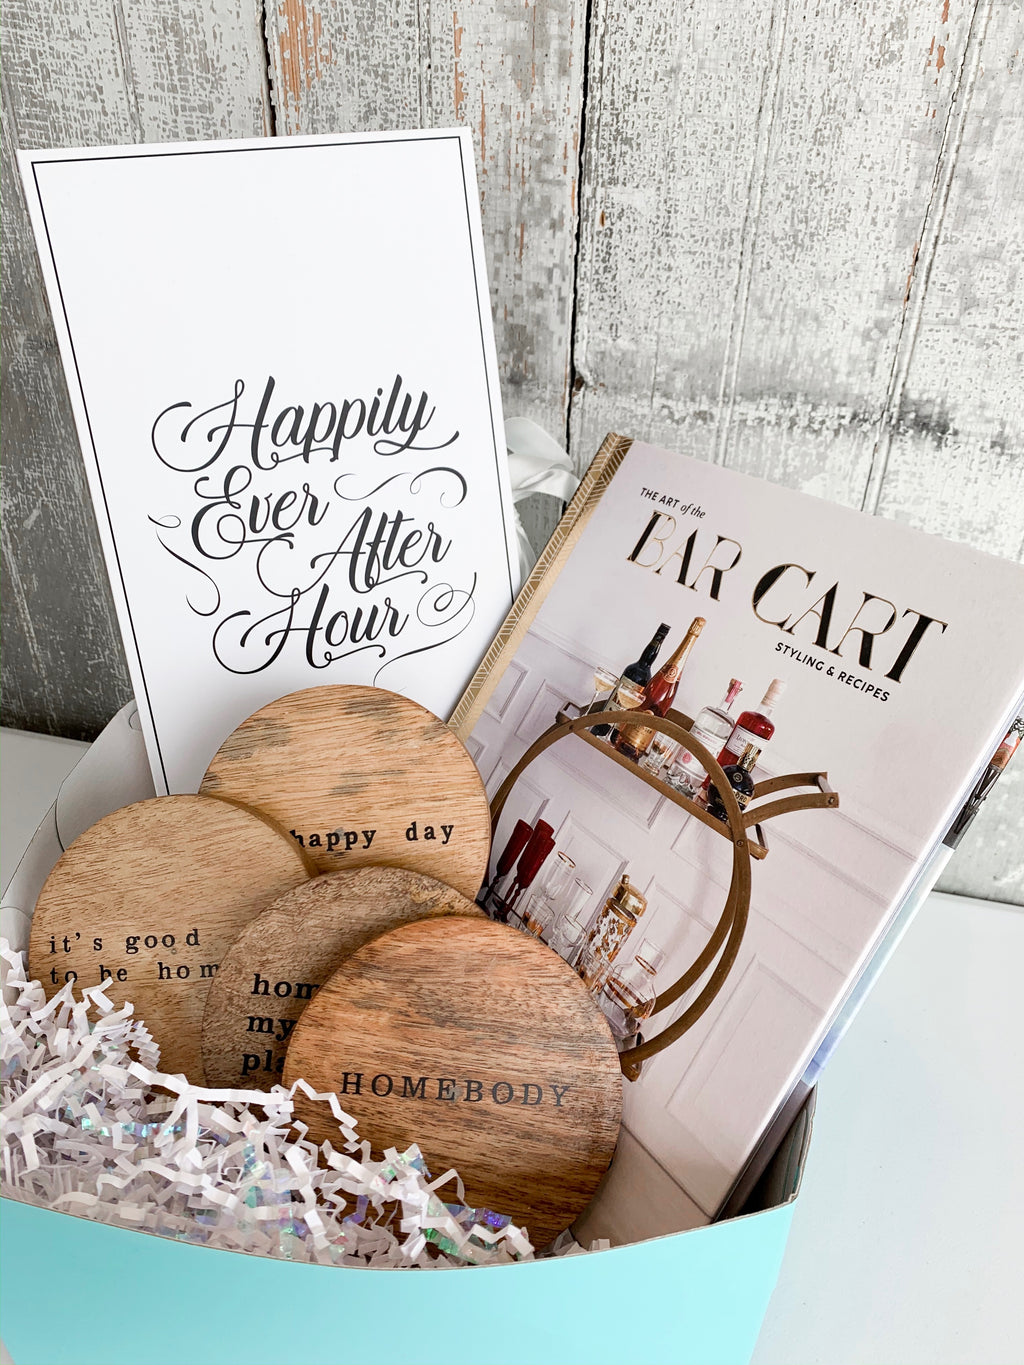 Happily Ever After Hours Gift Set